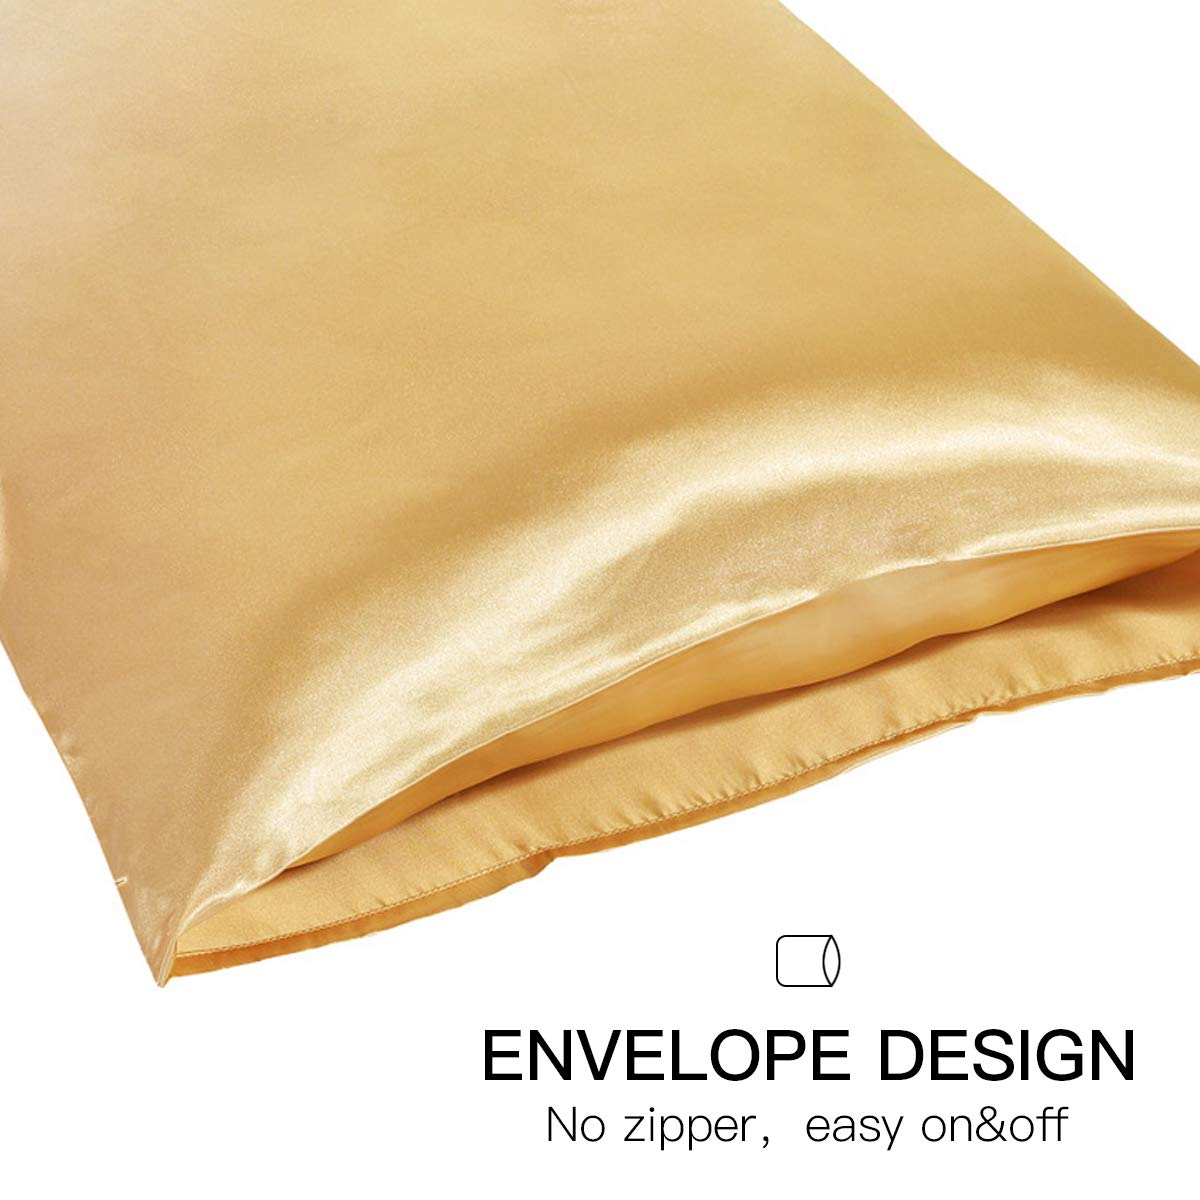 Duerer Two-Pack Satin Pillowcases Cool and Easy to Wash for Hair and Skin with Envelope Closure,Standard//Queen//King Size 20x26,Black